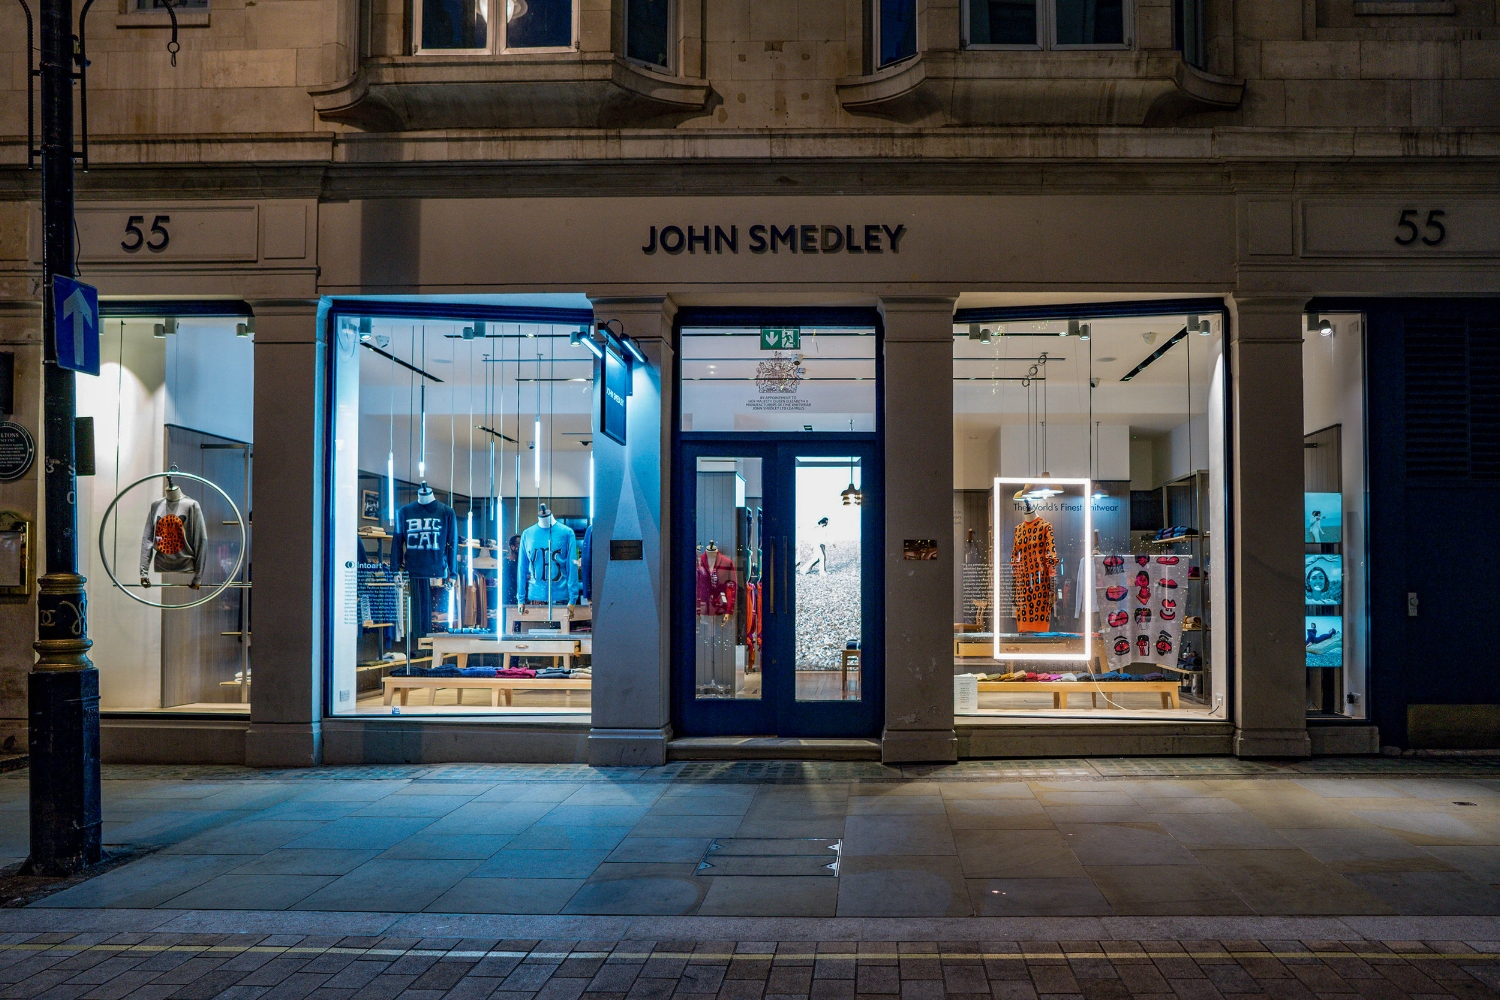 onebigcompany-design-london-art-direction-retail-marketing-window-display-john-smedley-knitwear-jermyn-street-christmas-2018-2.jpg